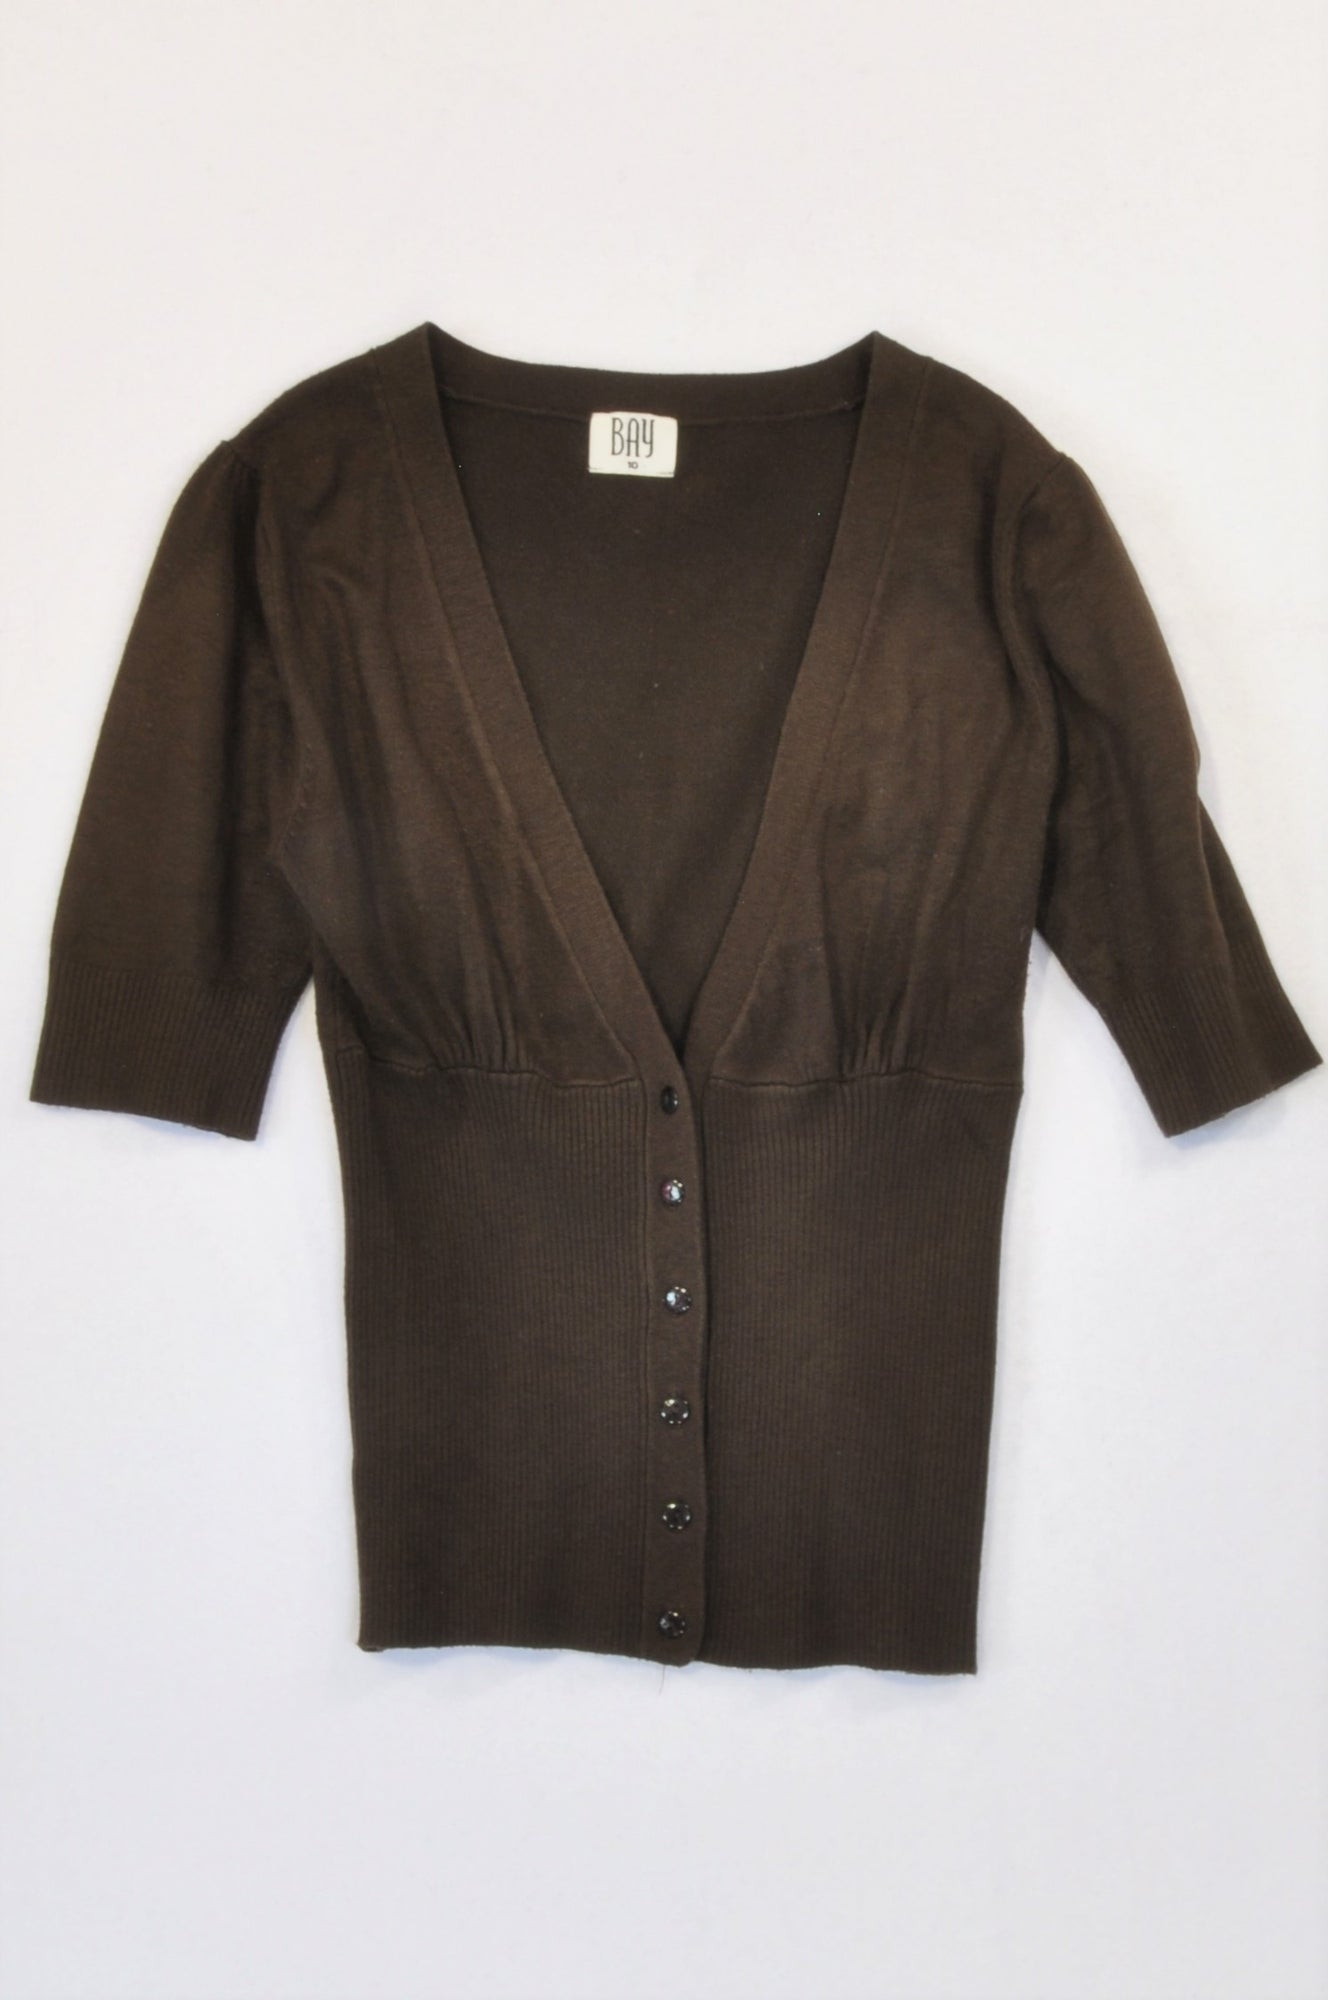 Bay Brown Cap Sleeve Cardigan Women Size 10